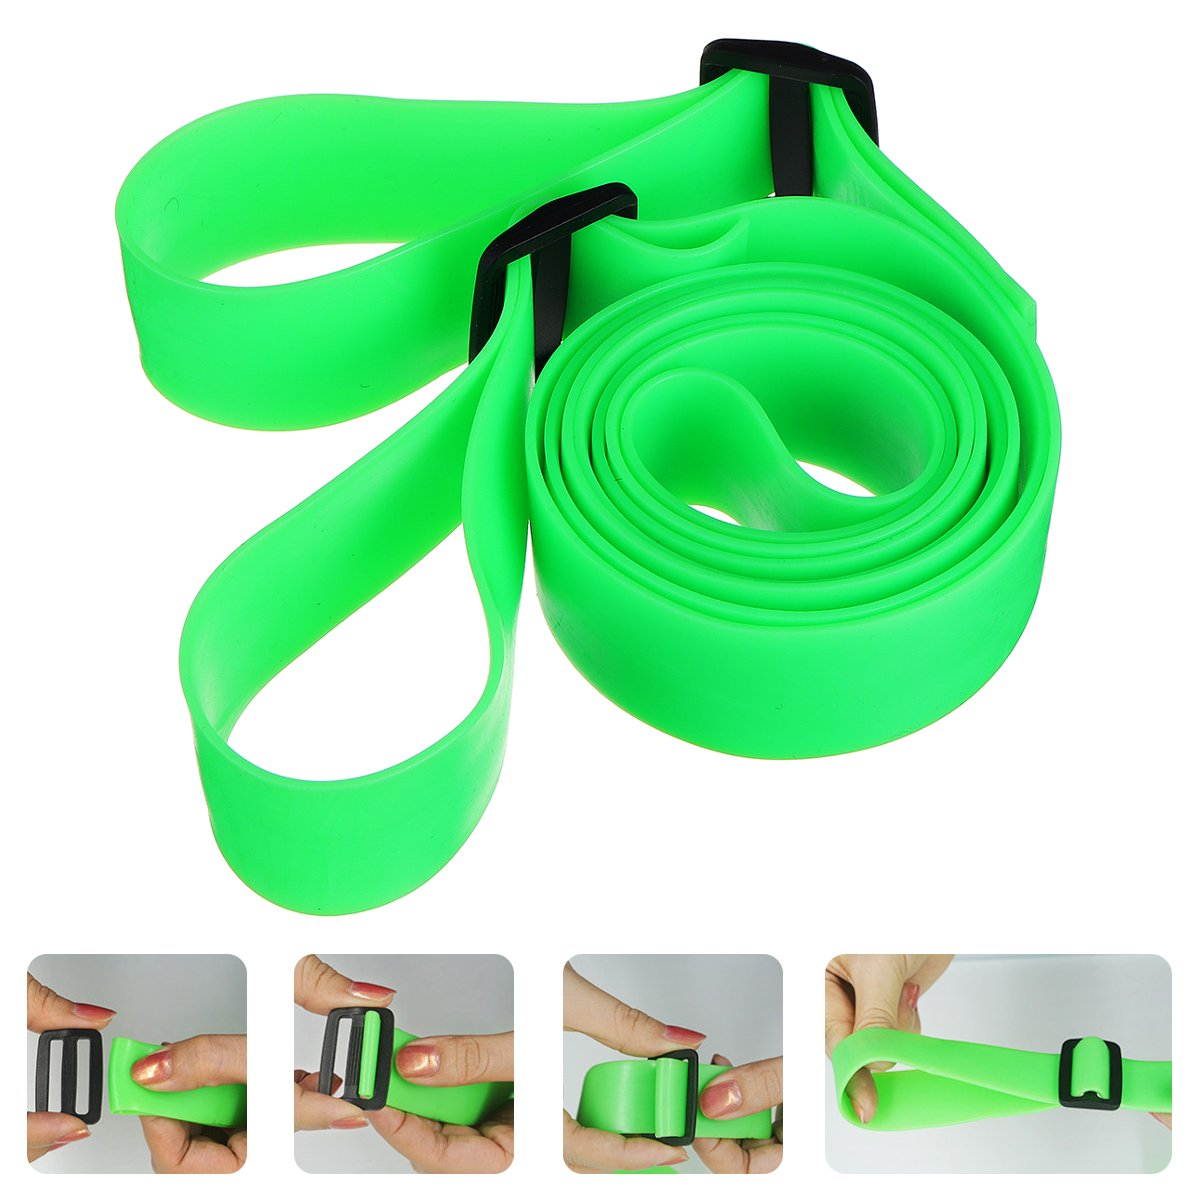 Upper Limb Arm Training Belt Rehabilitation Finger Glove Stroke Hemiplegia Paralyzed Elastic Stretch Belt Exercise Training Care Pakistan